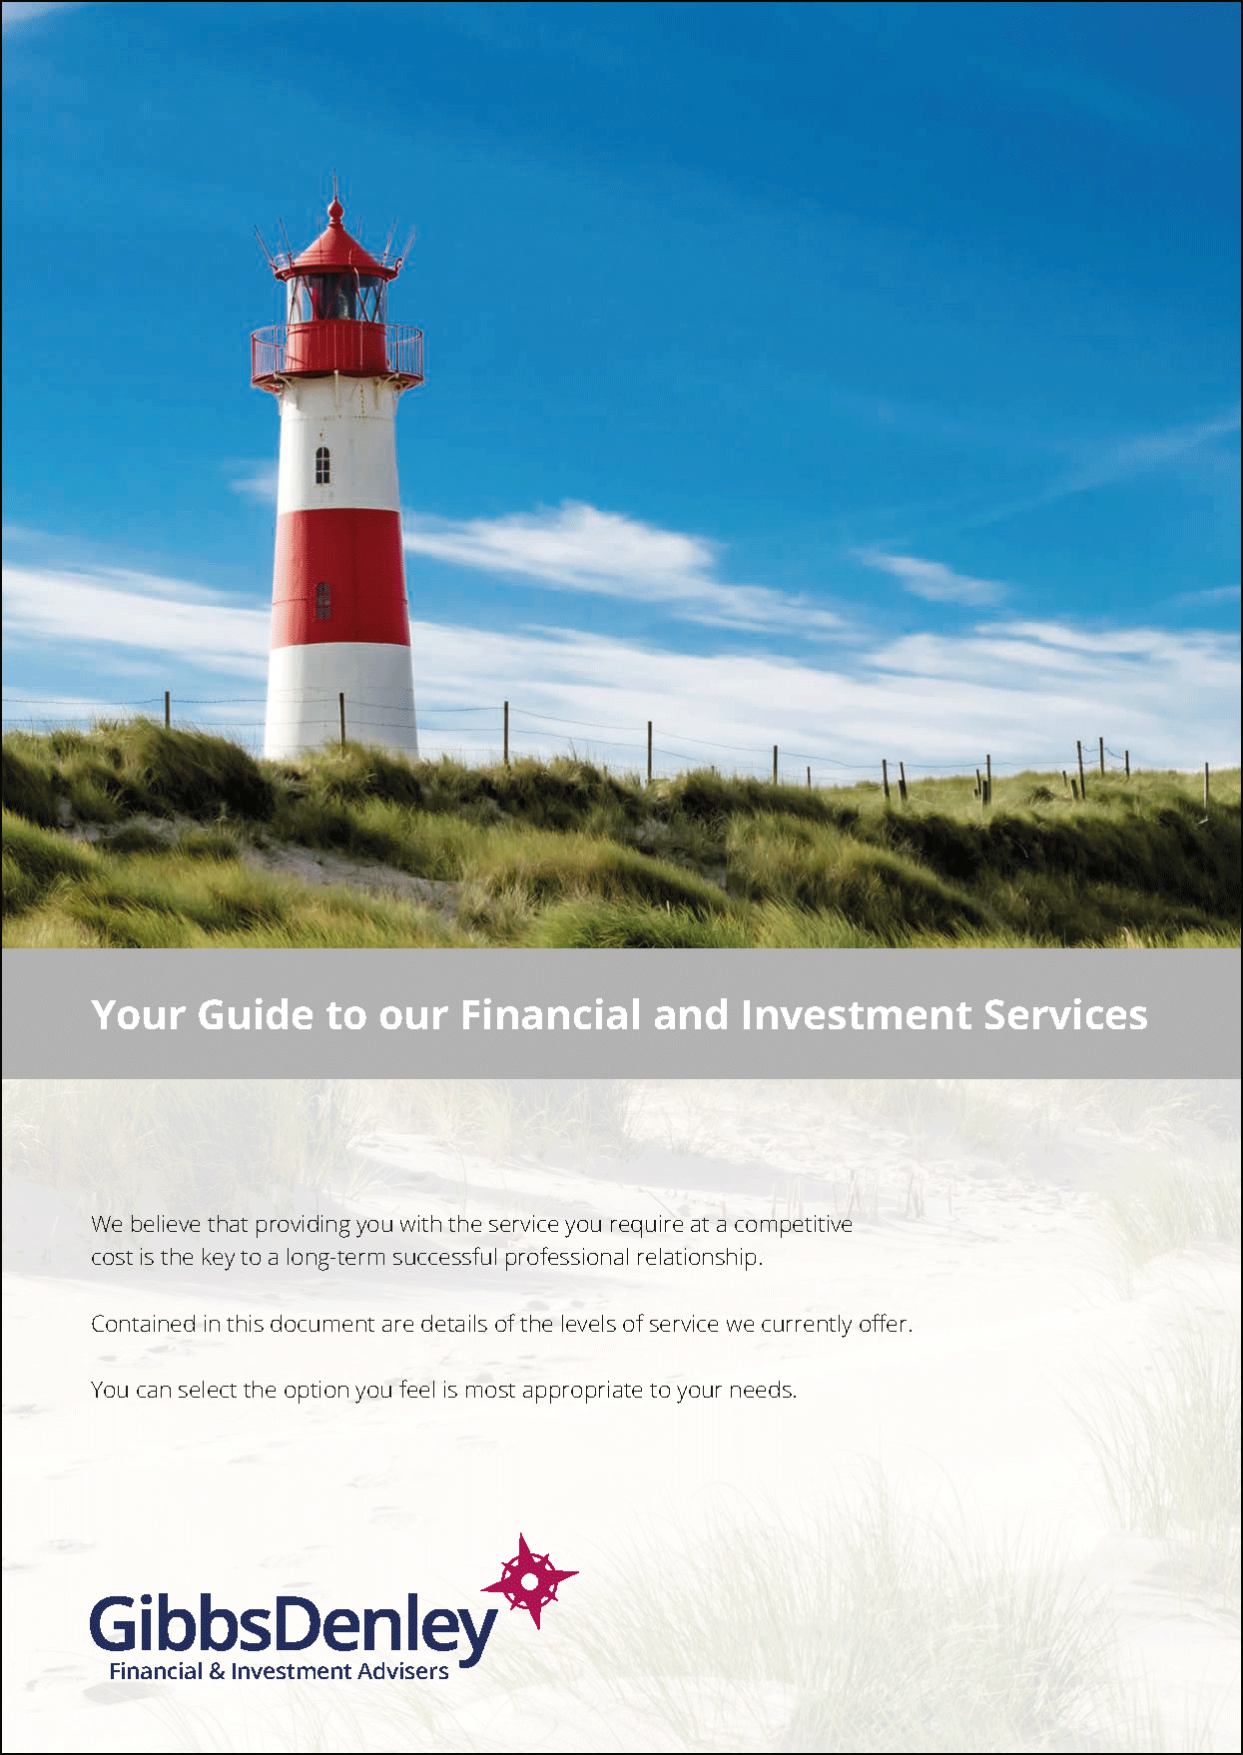 Your Guide to Our Financial and Investment Services